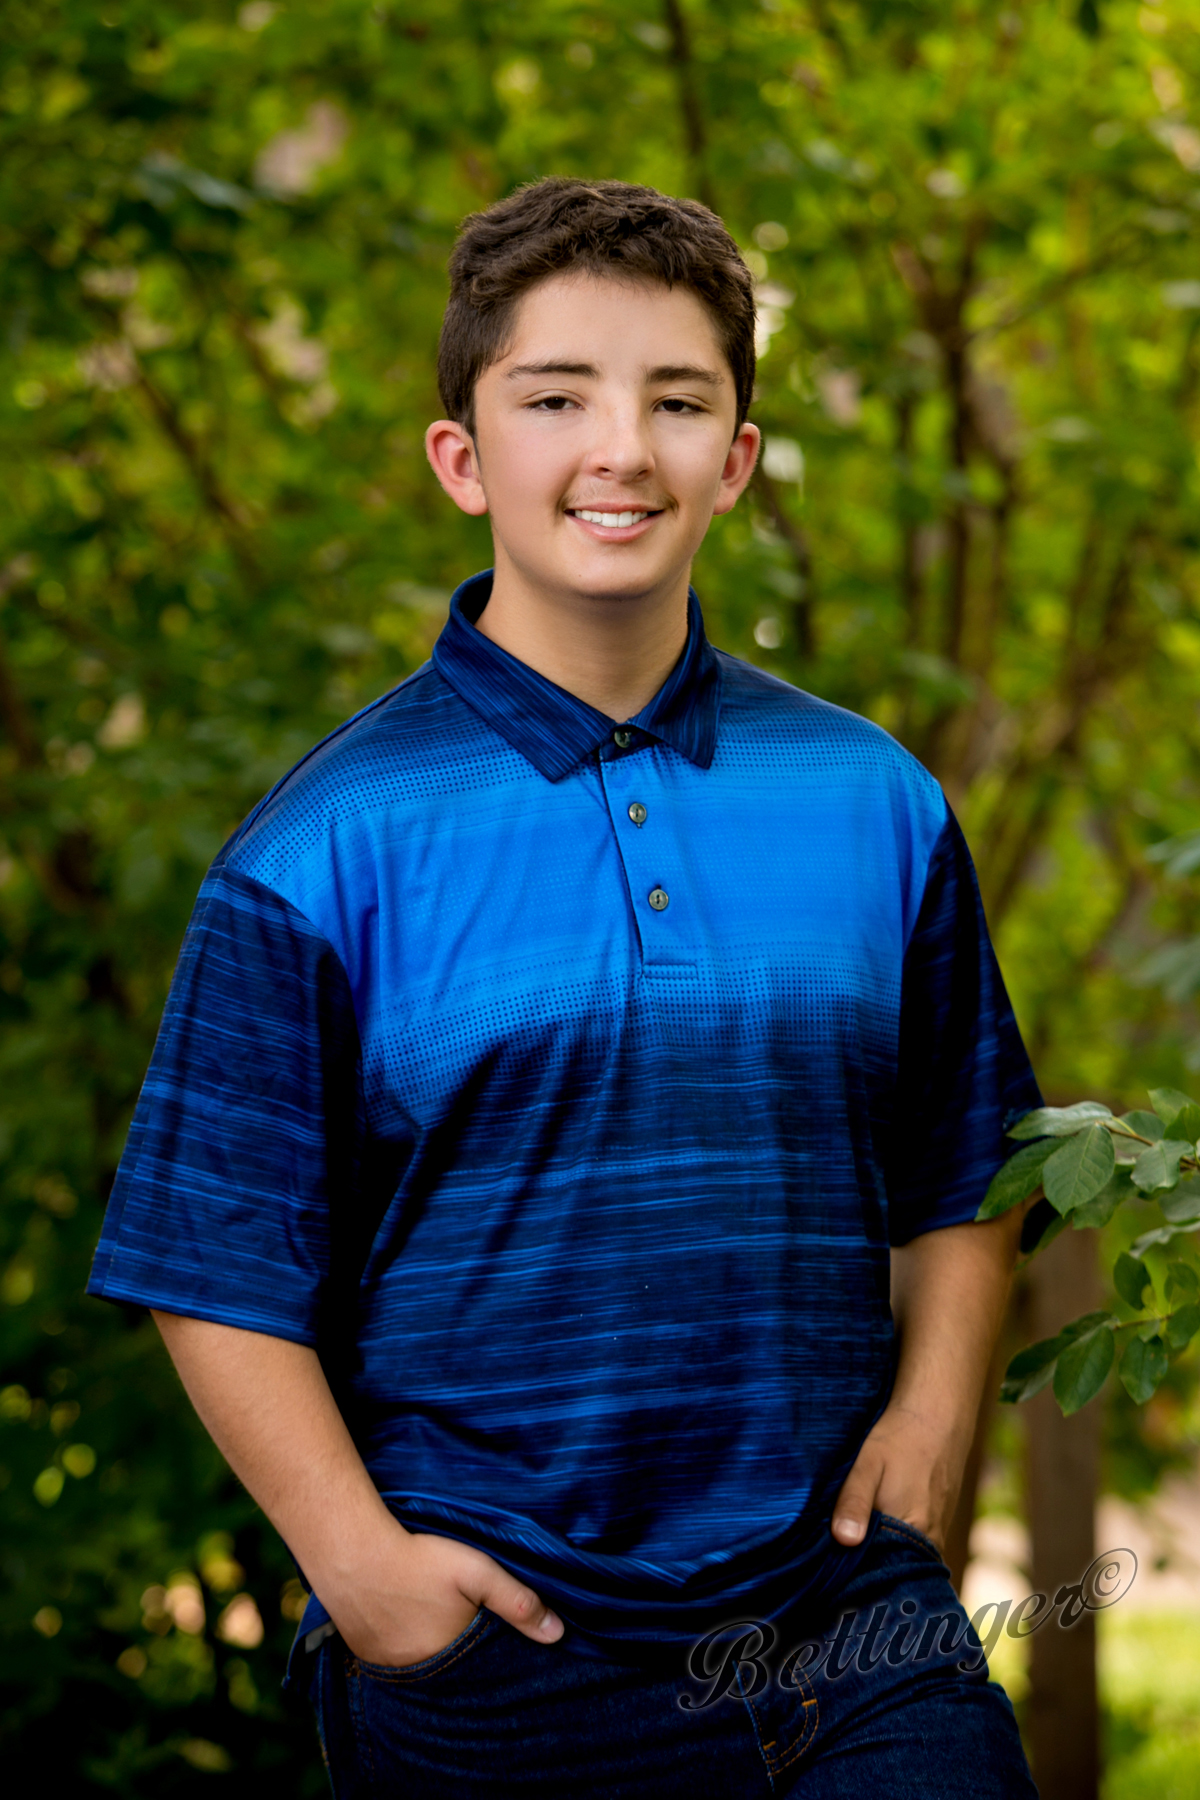 - Alex enjoys cooking fancy foods. He may decide to go to culinary school in Chicago. He is also interested in going to CU Boulder for Technical Engineering.